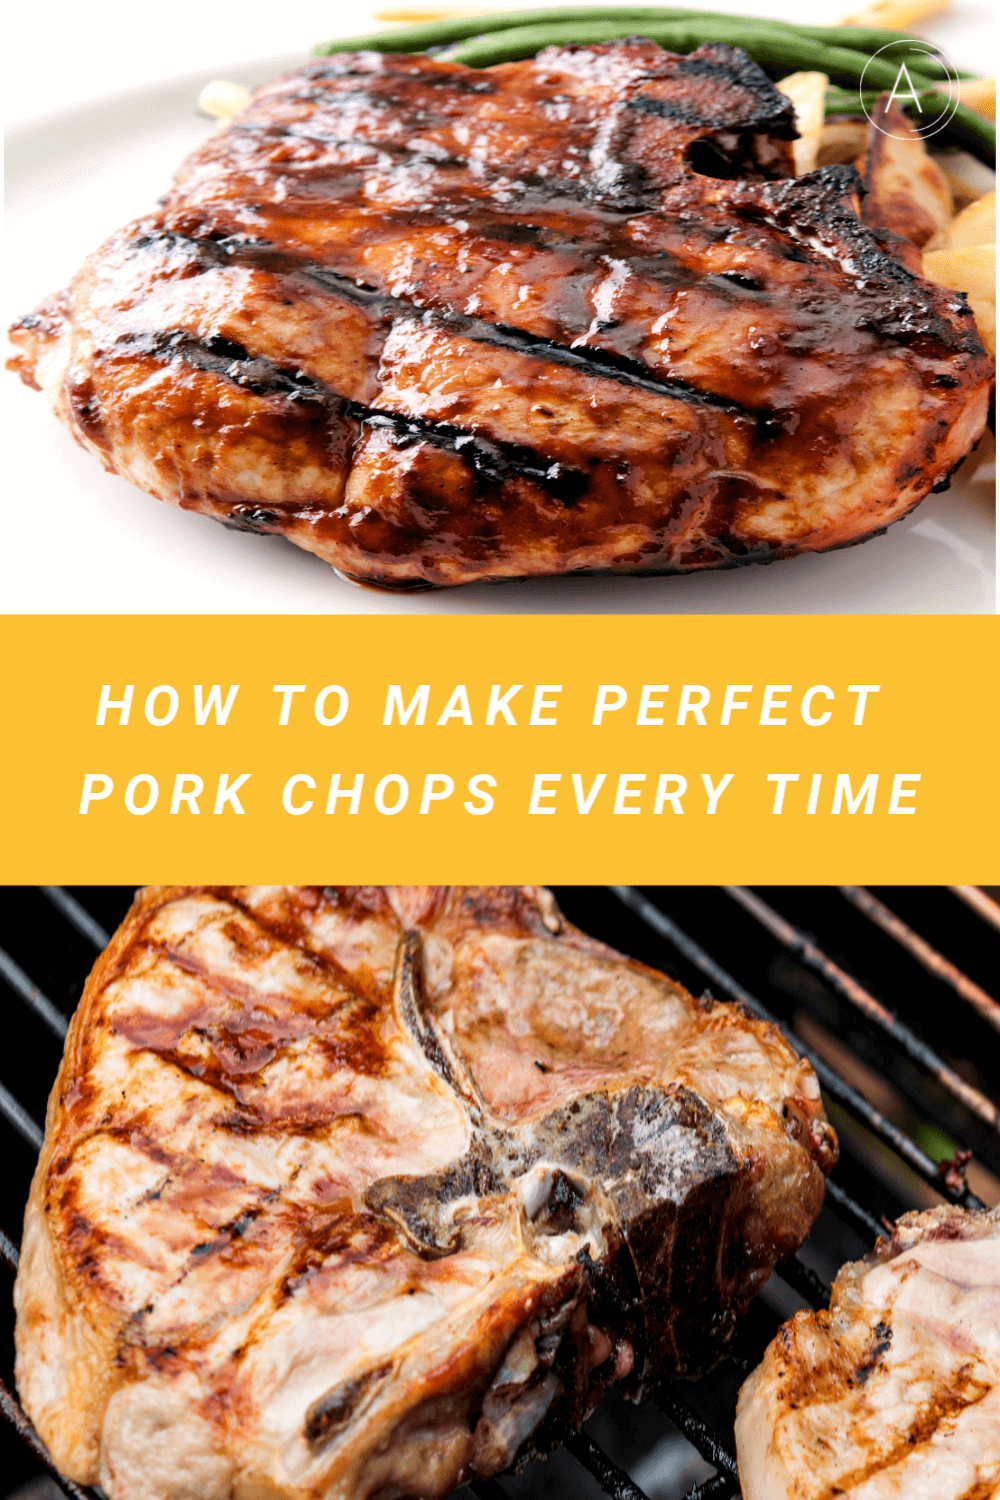 Grilling Thick Pork Chops is not difficult once you know a few tricks. You can get those beautiful grill marks plus keep the meat juicy and tender. The meat is full of flavor with a smokey taste you only get from the grill. Easy tutorial you can adapt to any pork chop thickness.